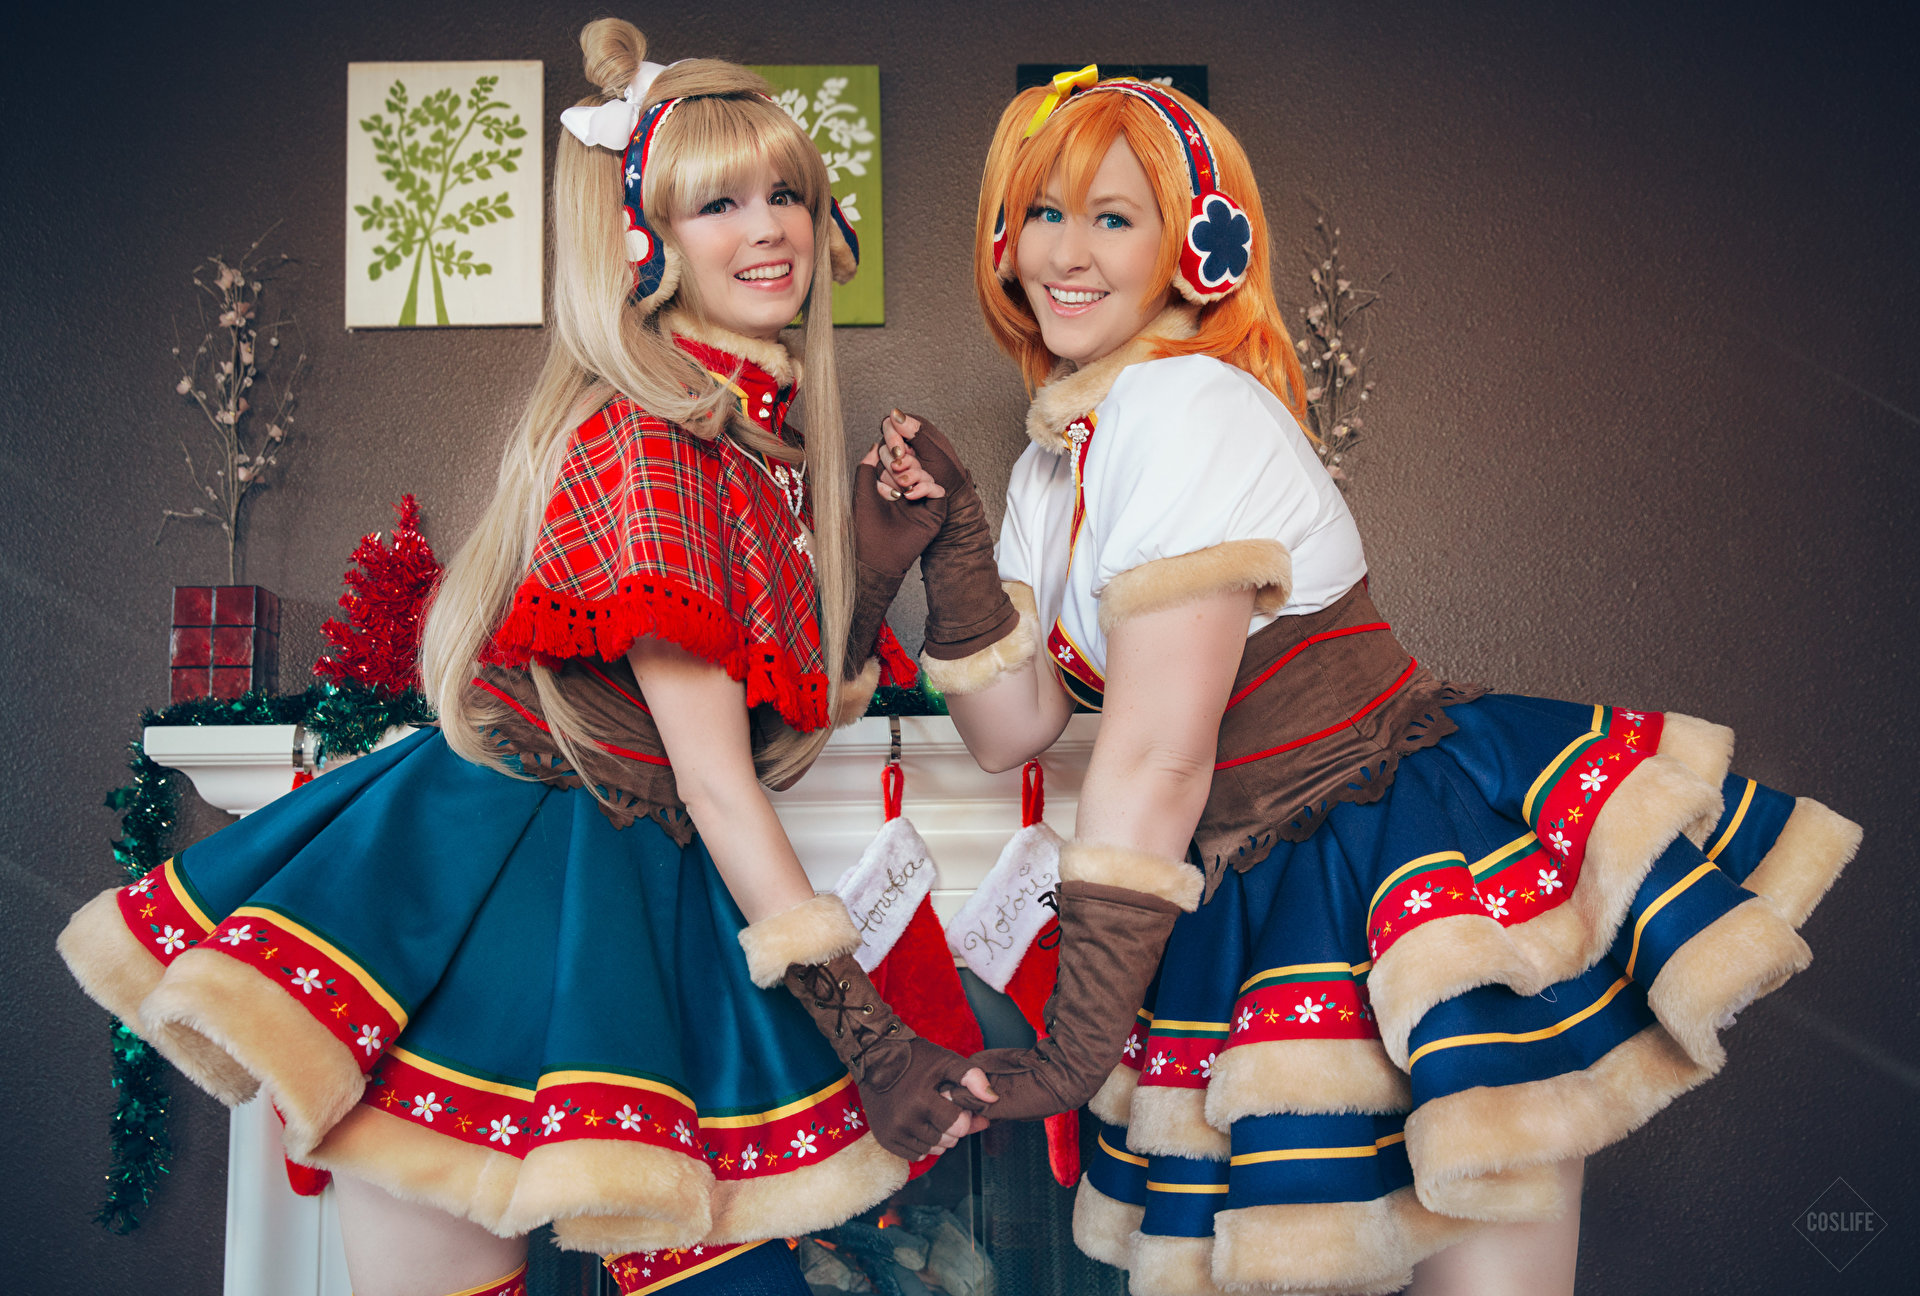 Cospix.net photo featuring Sparkle Pipsi and DaydreamerNessa